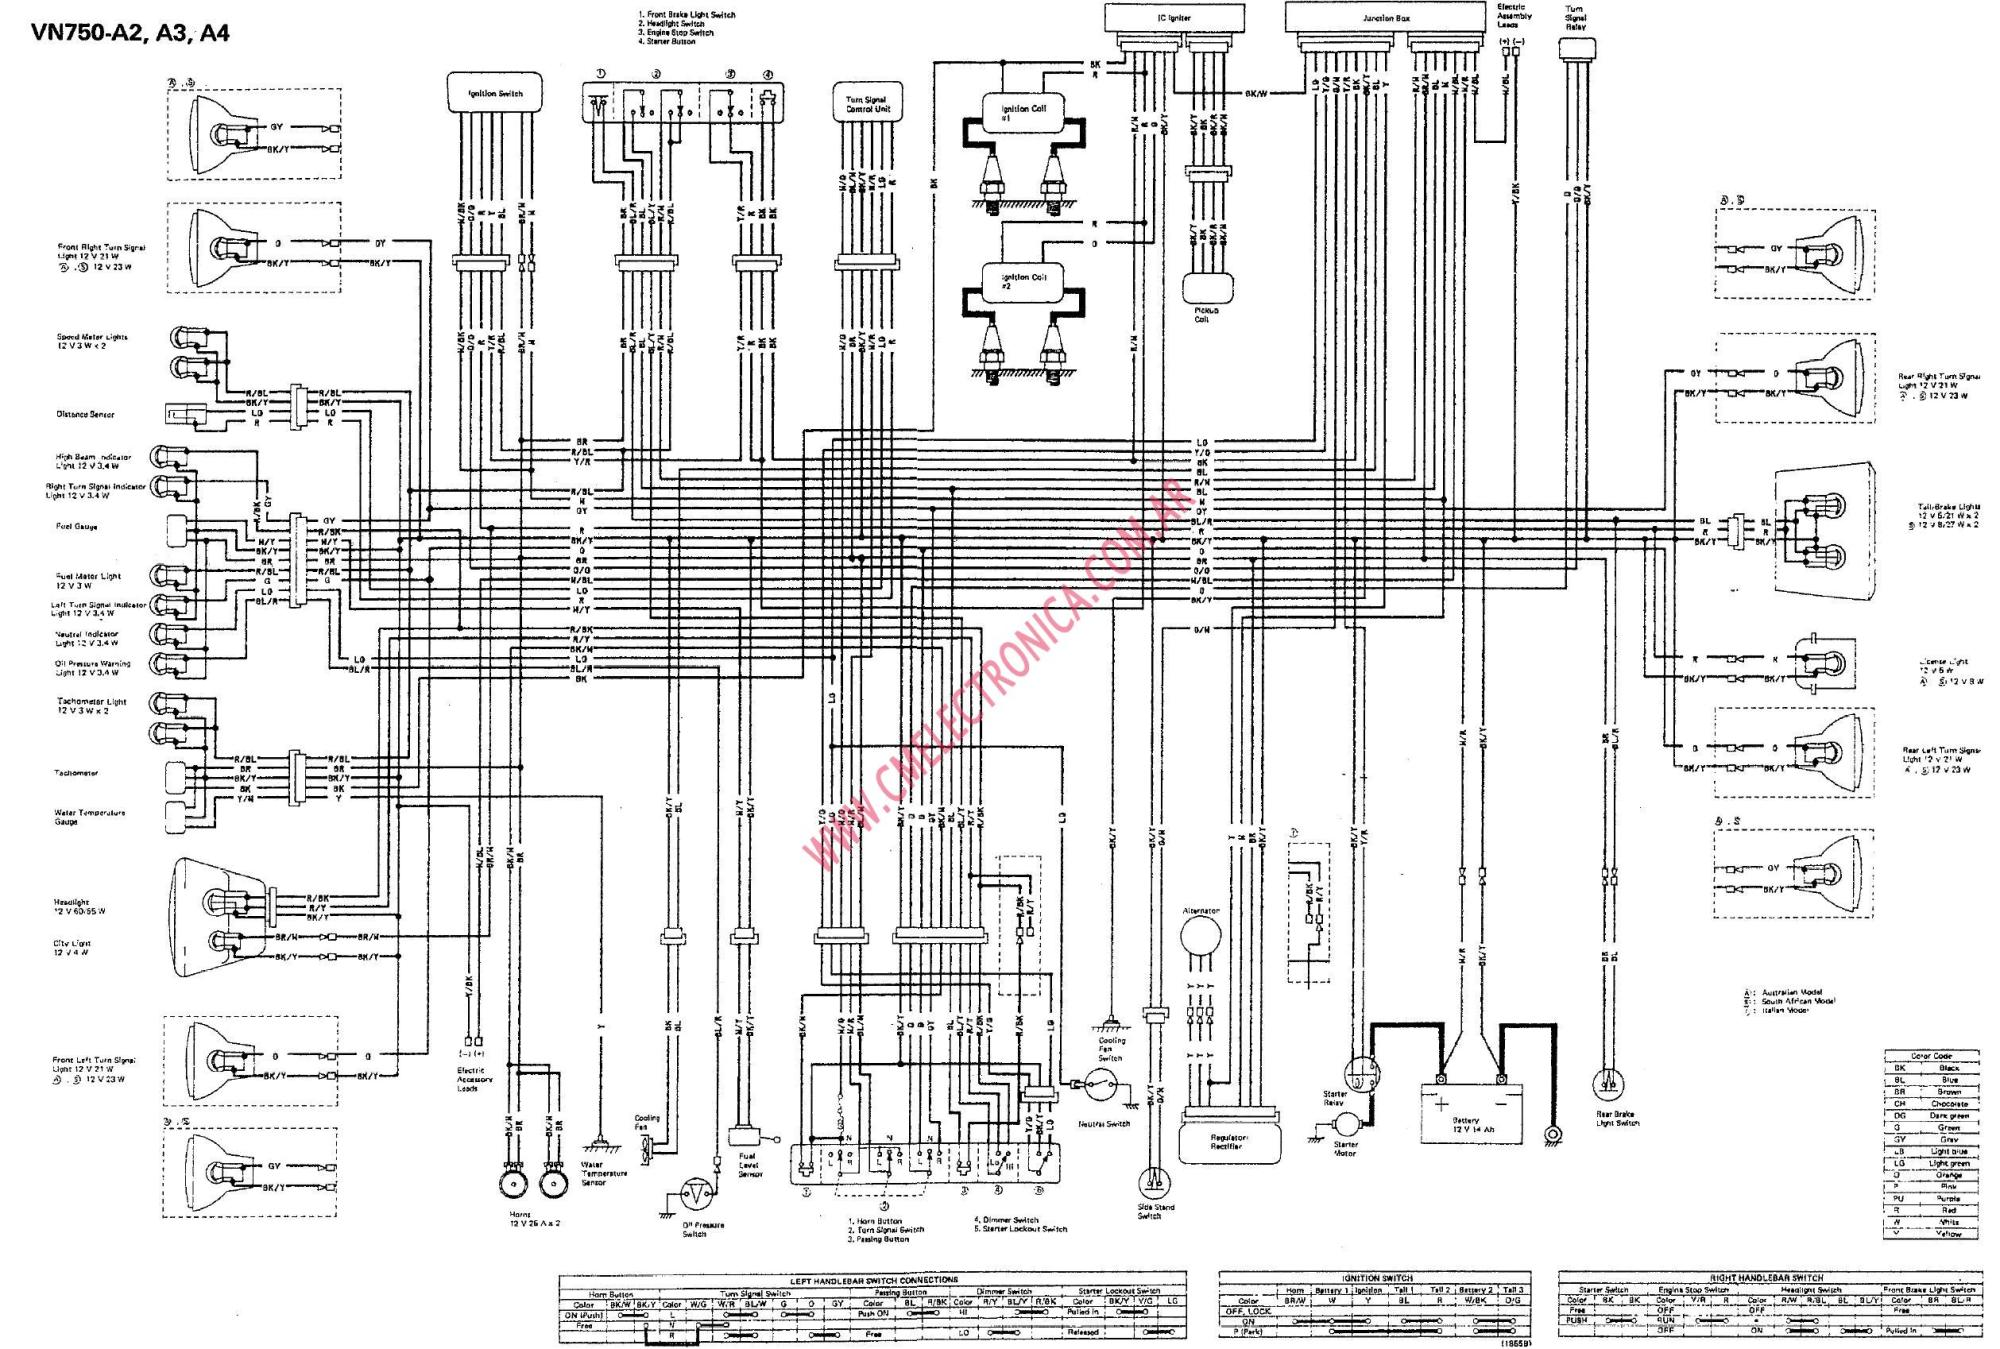 hight resolution of vn750 wiring diagram wiring diagram megavn750 wiring diagram wiring diagram toolbox vulcan 750 wiring diagram vn750